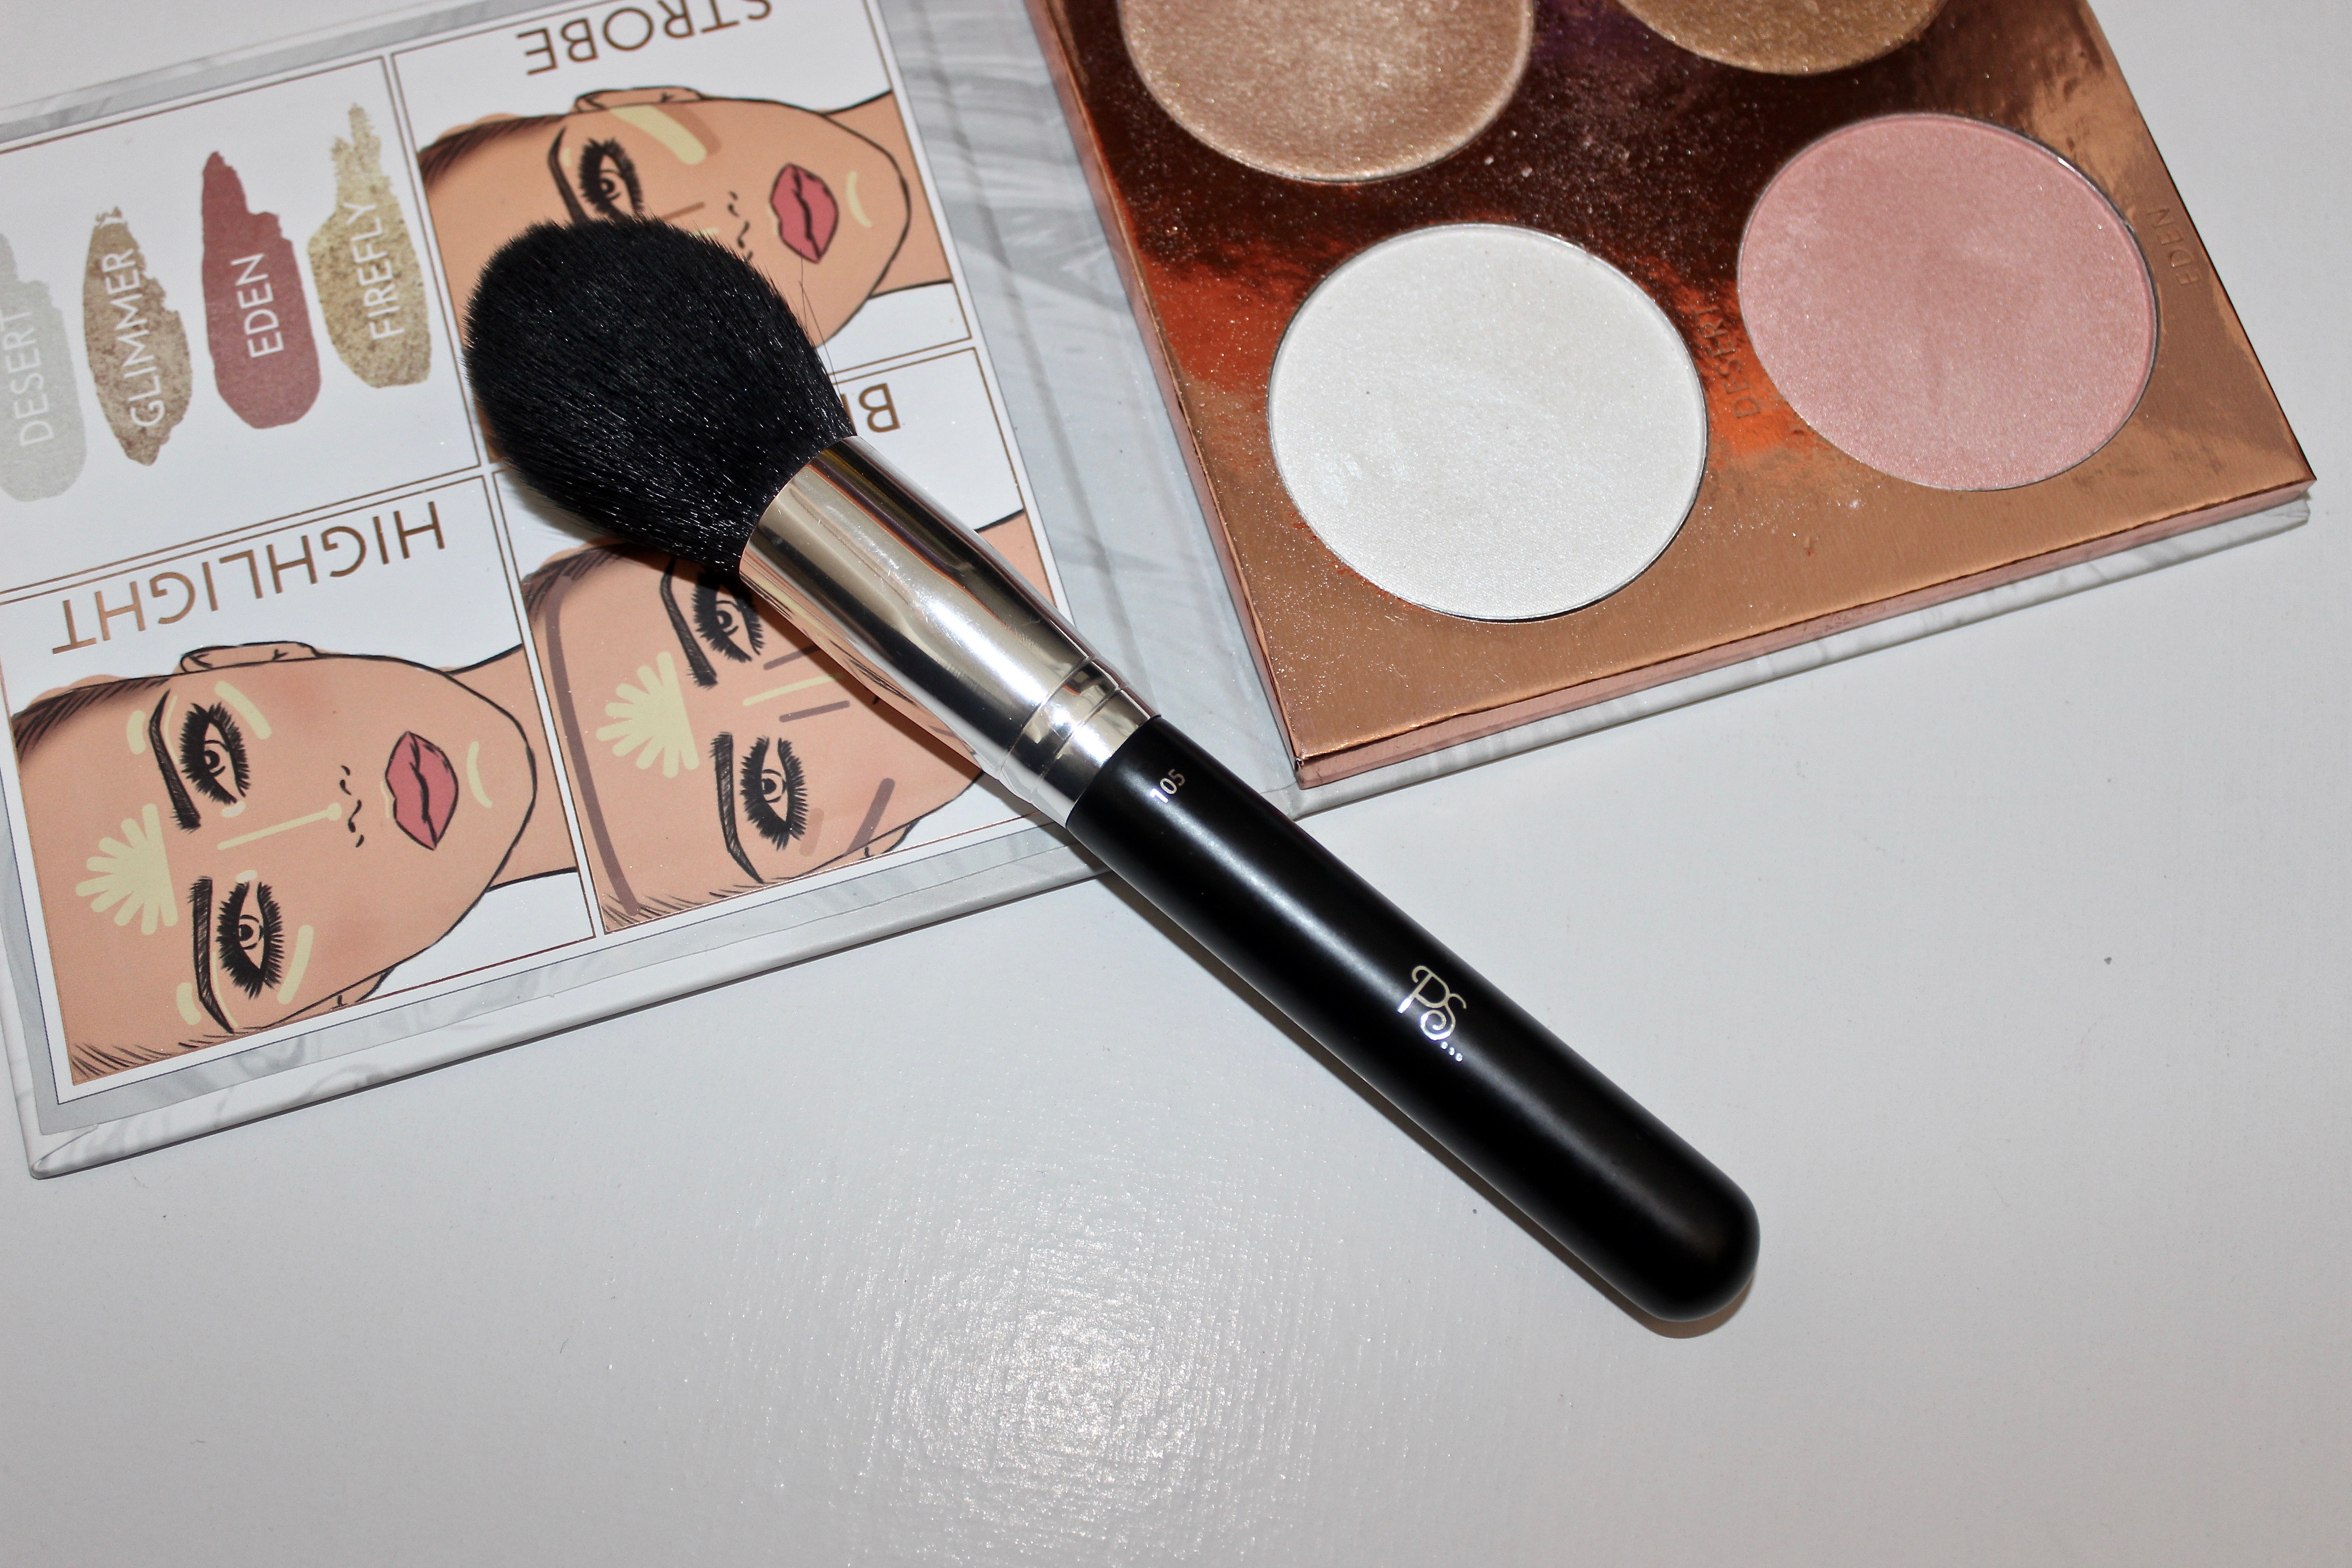 primark makeup brushes